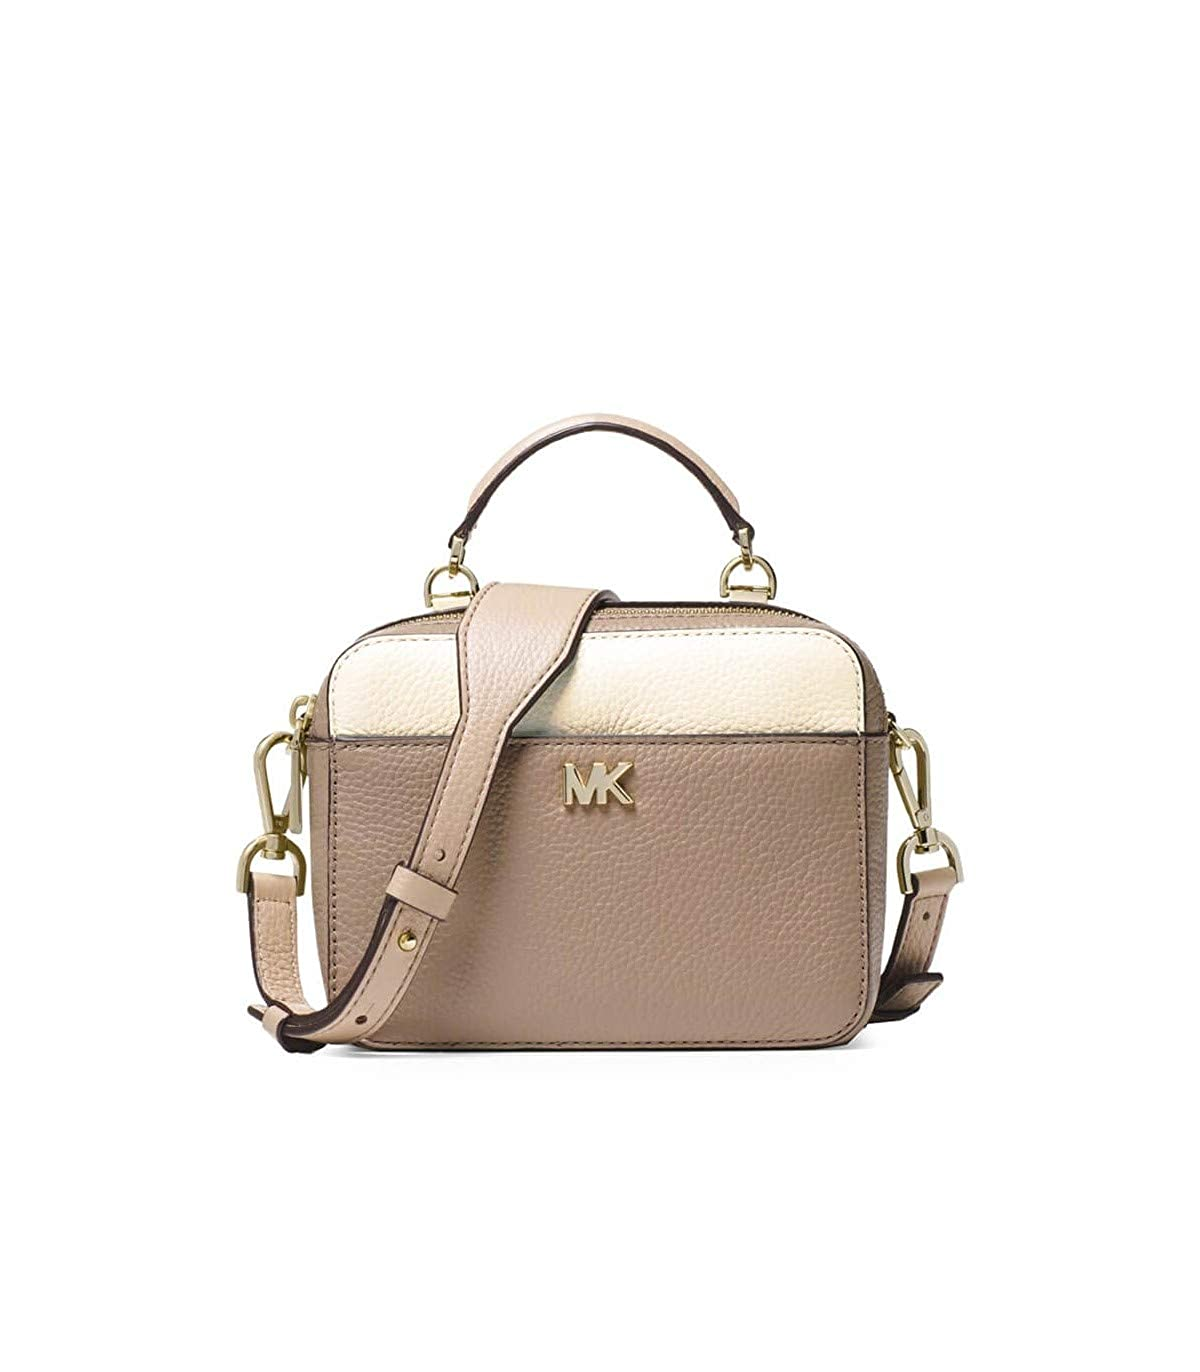 eaf2b1518289 ... usa michael kors mini gtr strap crossbody bag oatmeal amazon clothing  aad51 dafc8